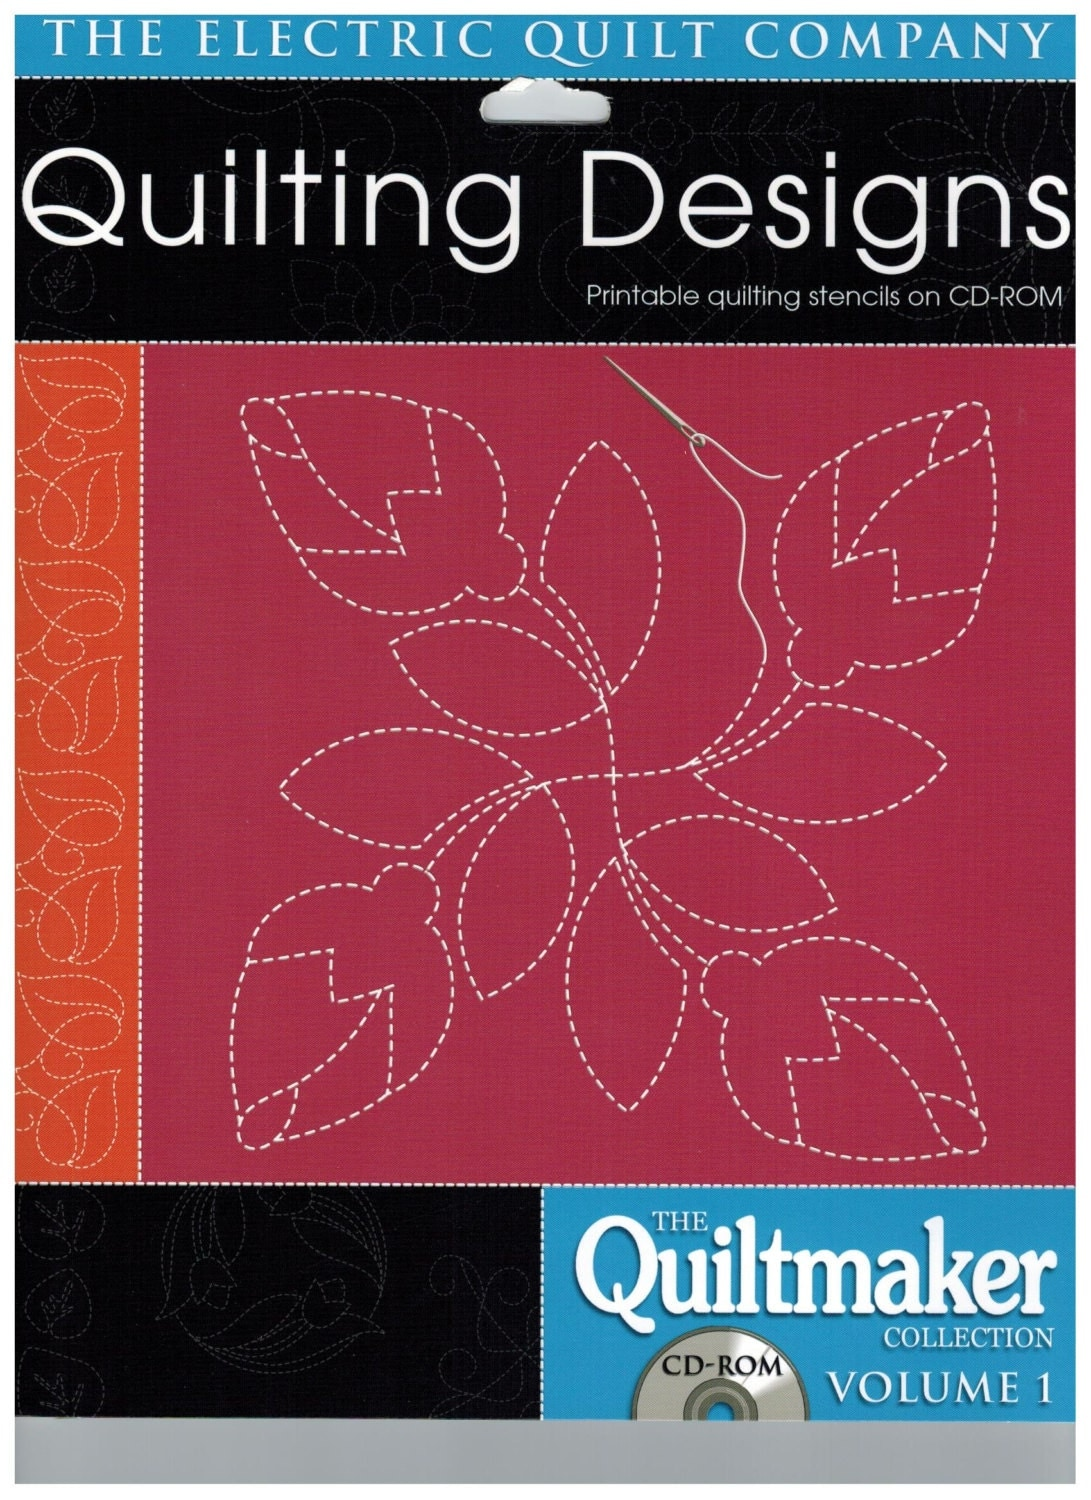 Quiltmaker Quilting Designs Cd : Quiltmaker s Volume 1 Quilting Designs from The Electric